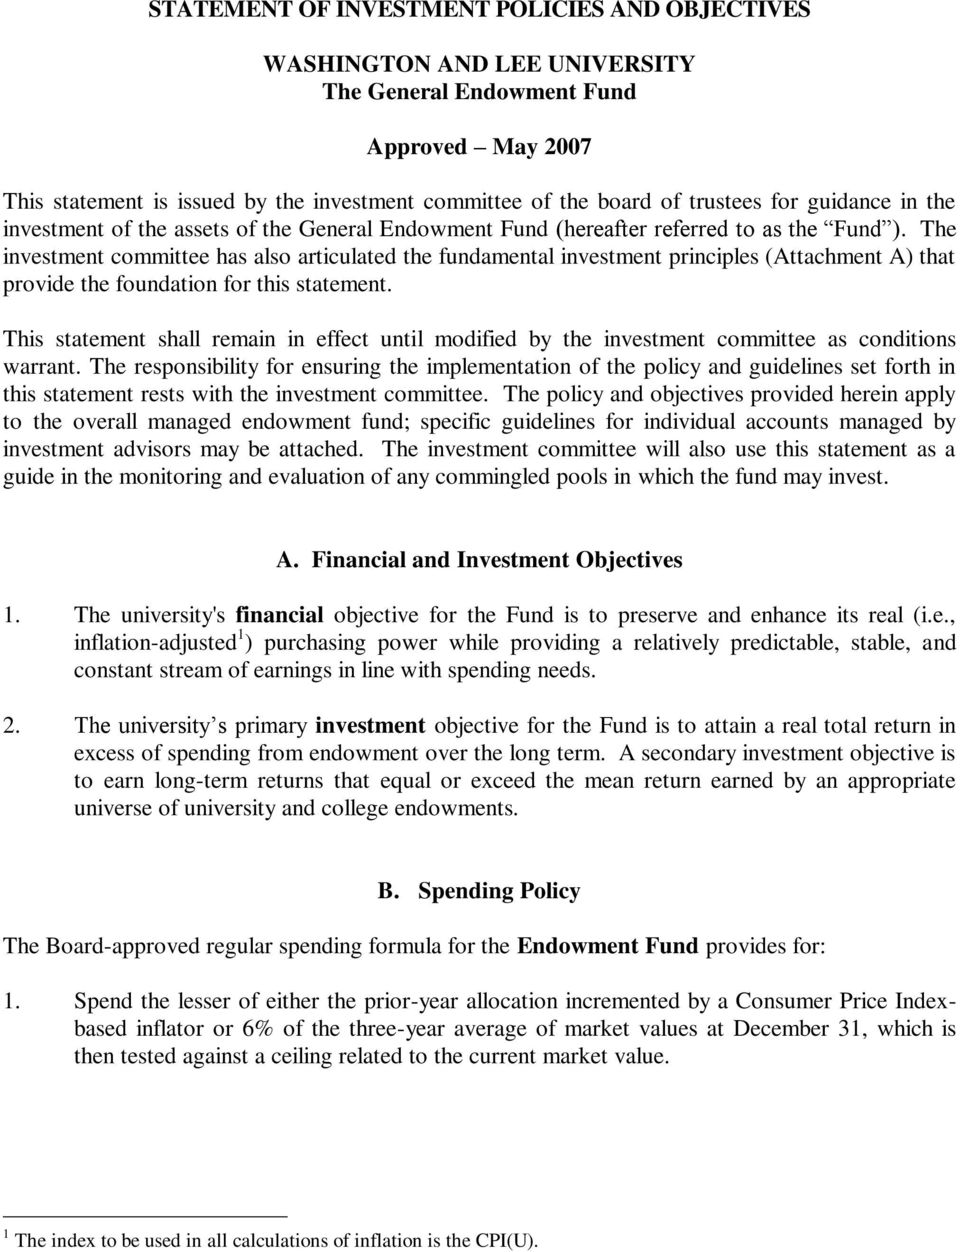 The investment committee has also articulated the fundamental investment principles (Attachment A) that provide the foundation for this statement.